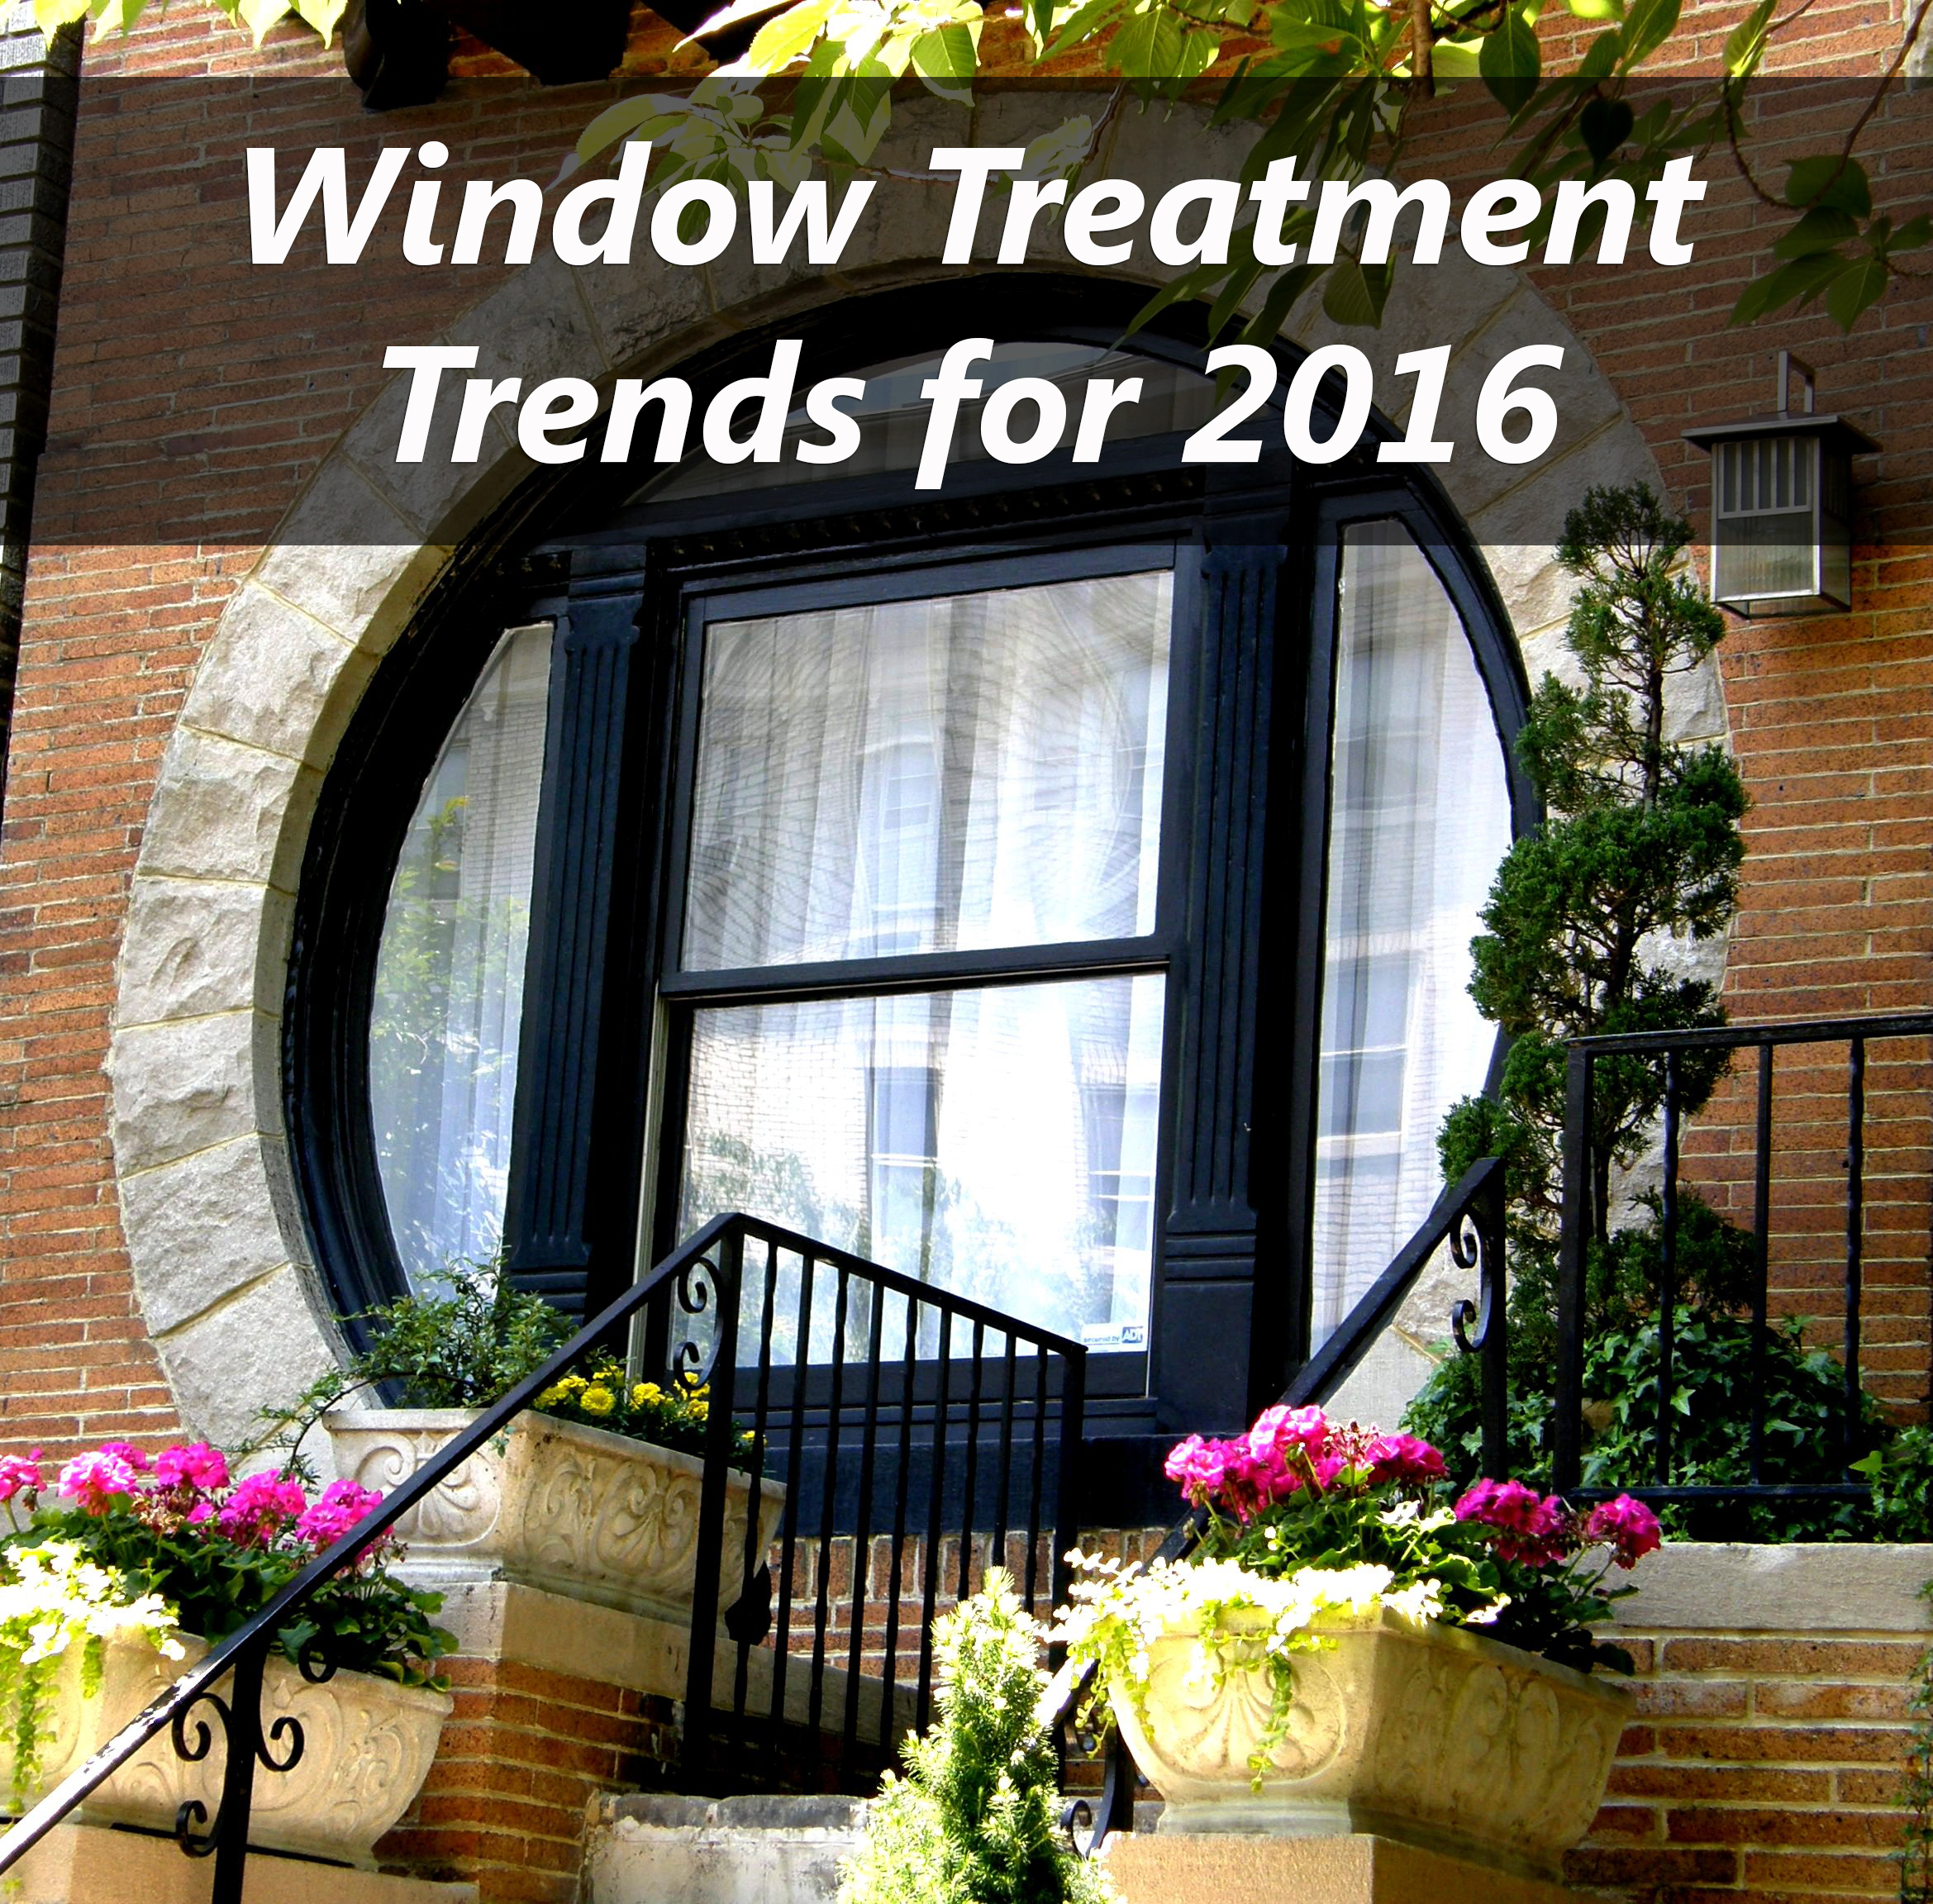 New Window Treatment Trends for 2016